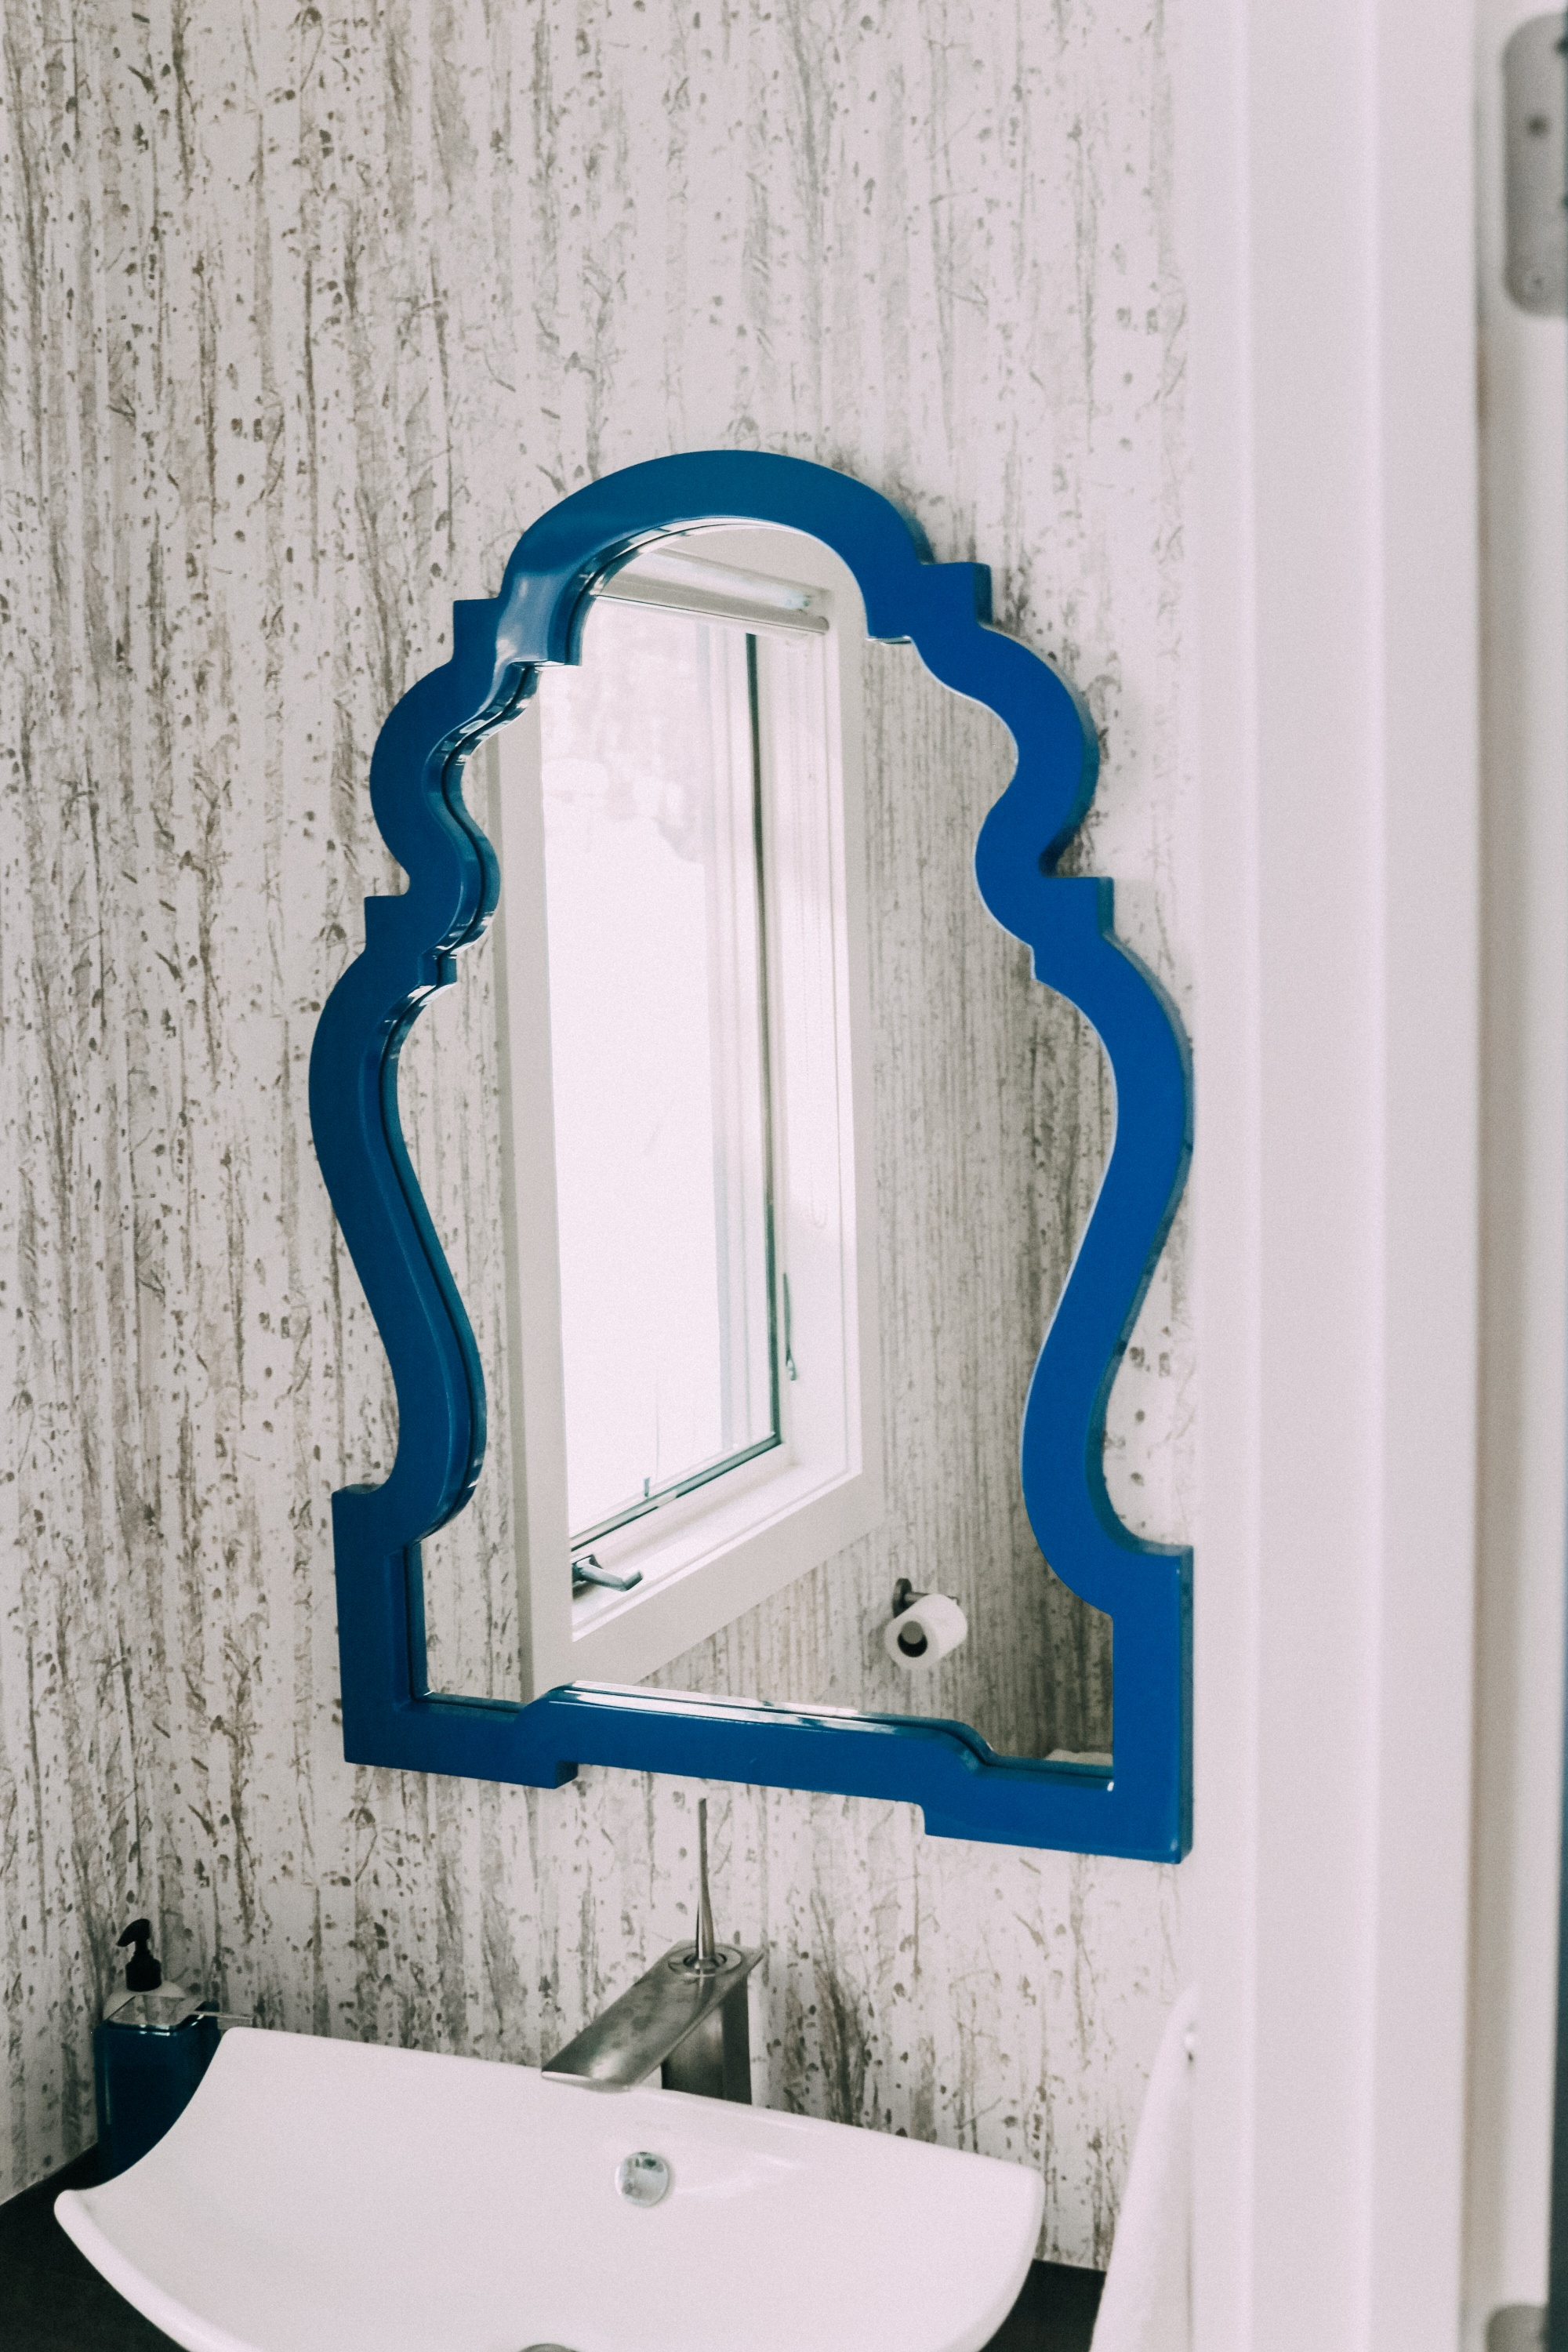 how to pick perfect wall mirror for home decor, blue arched vanity wall mirror in powder bathroom